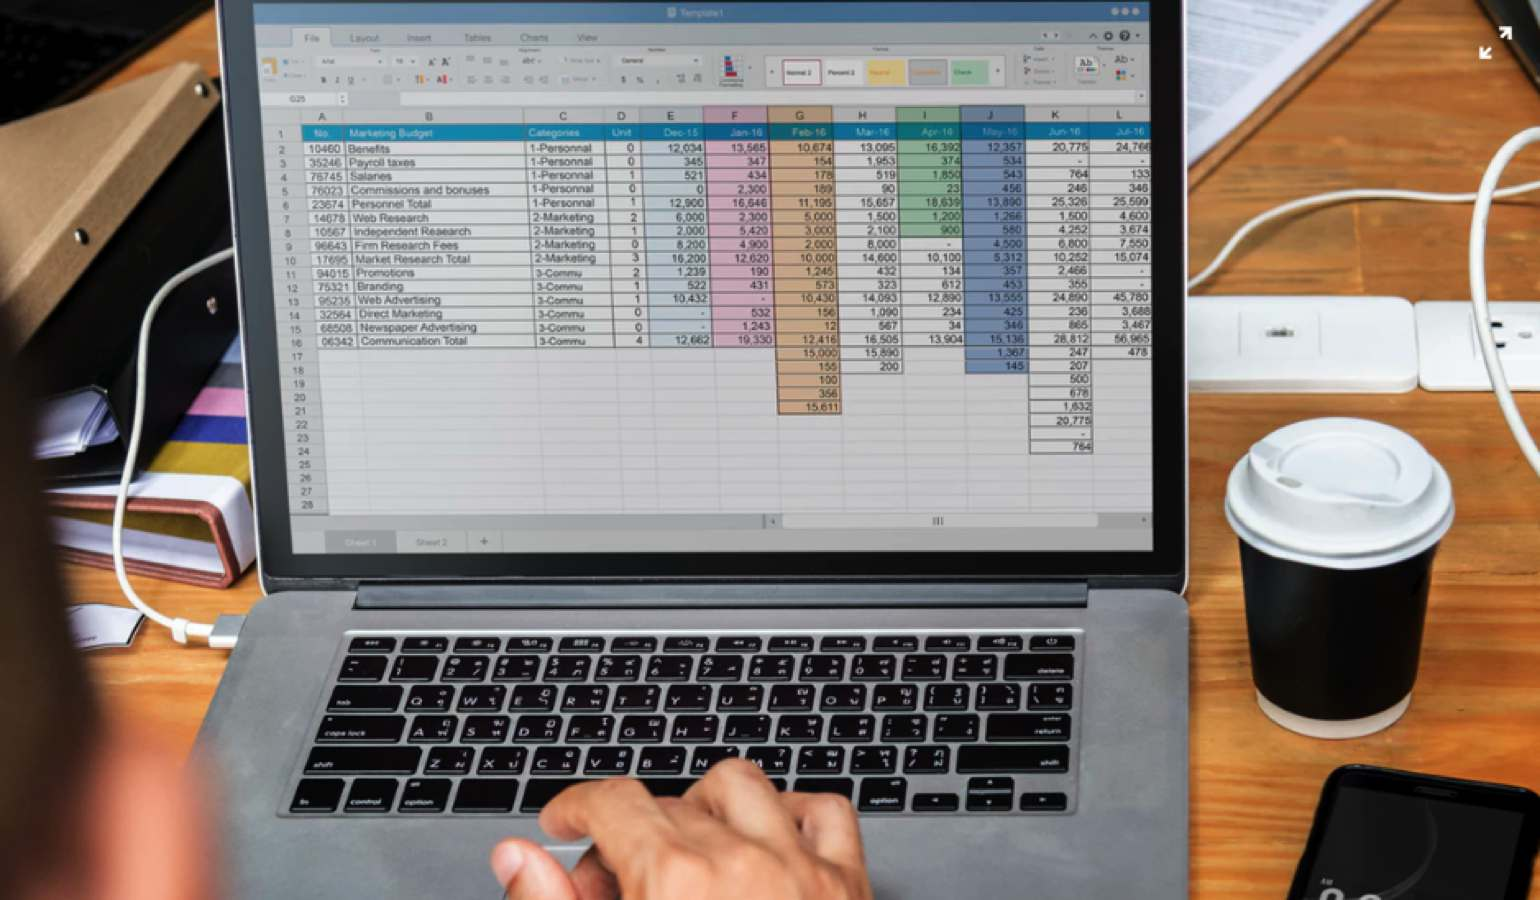 laptop with microsoft excel open on a desk with cup of coffee